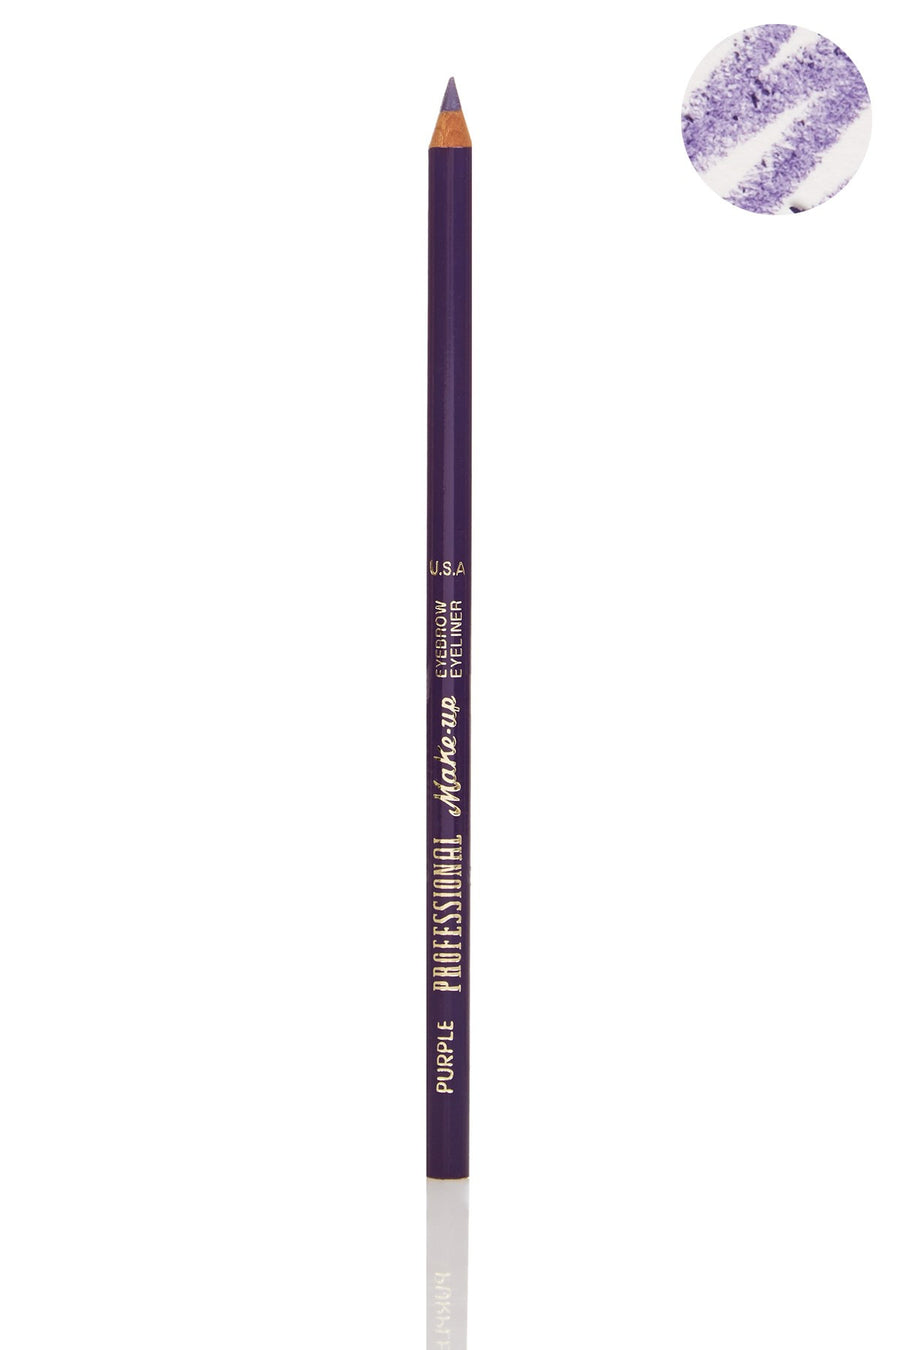 Purple Eyebrow Eyeliner Pencil - Blend Mineral Cosmetics